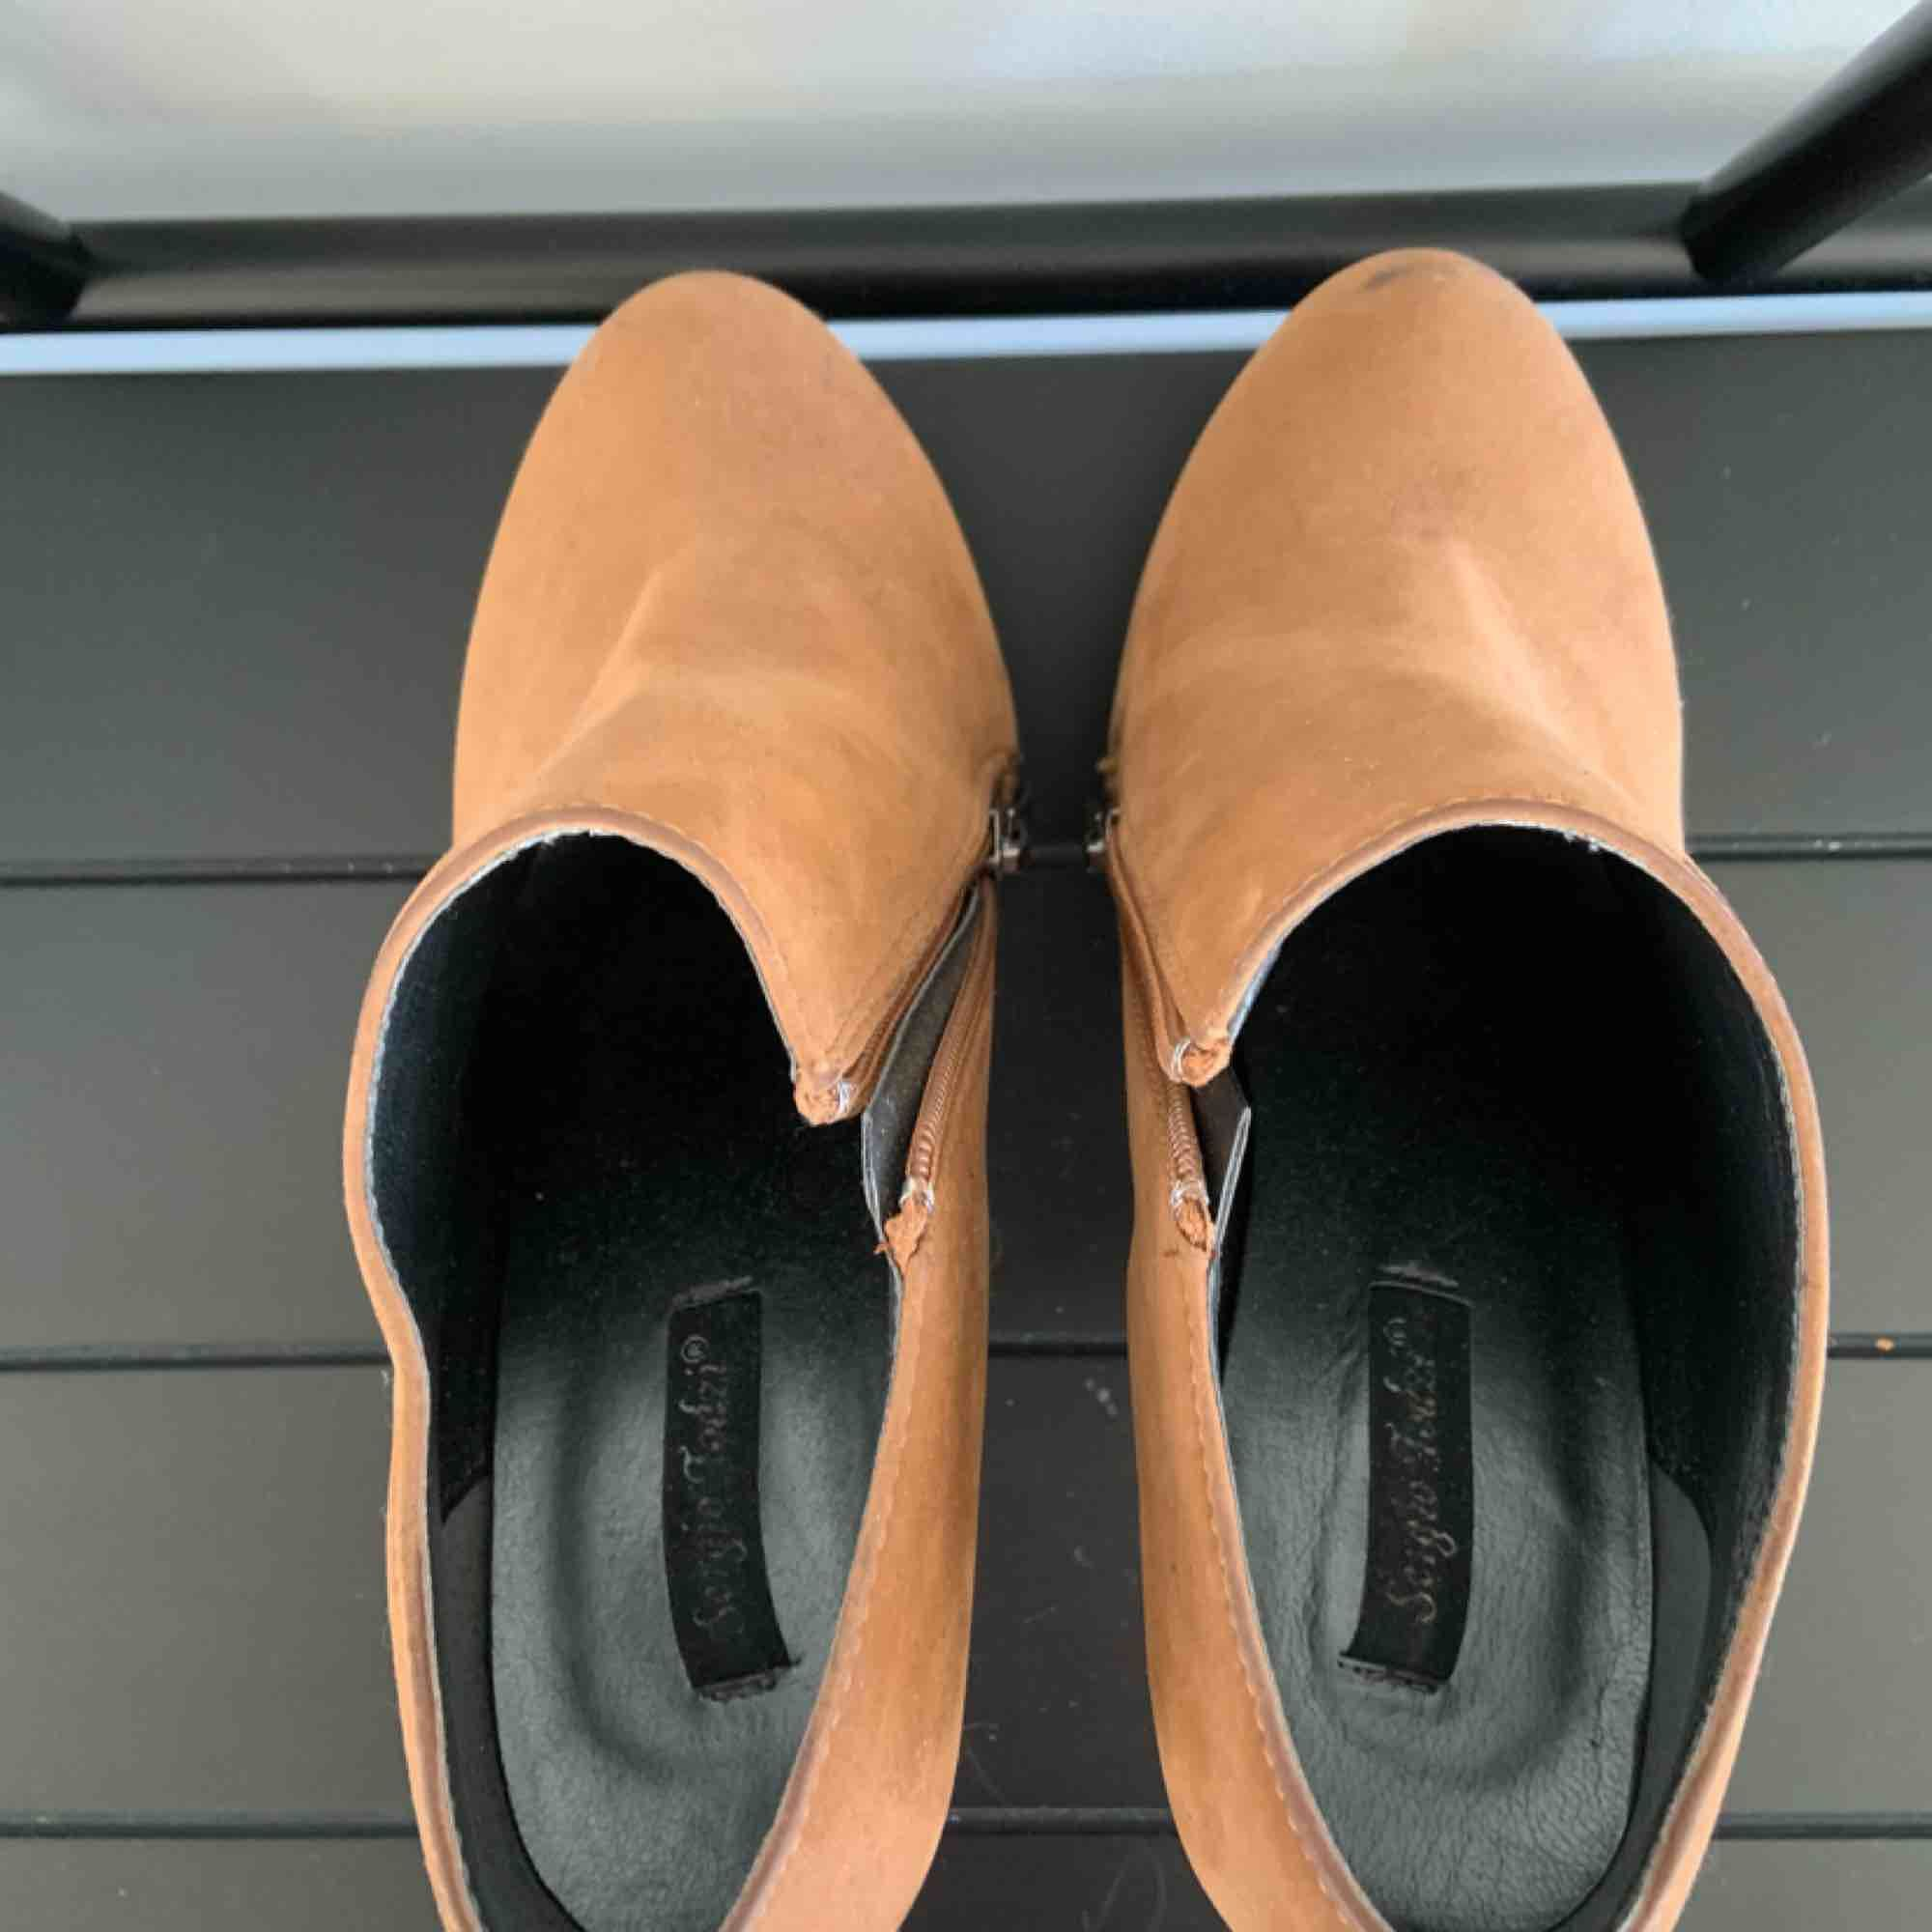 Brown suede high heels Brand: Sergio Todzi Size: 37 Colour: brown with black sole  Some scratches on the shoes, but otherwise hardly worn.. Skor.